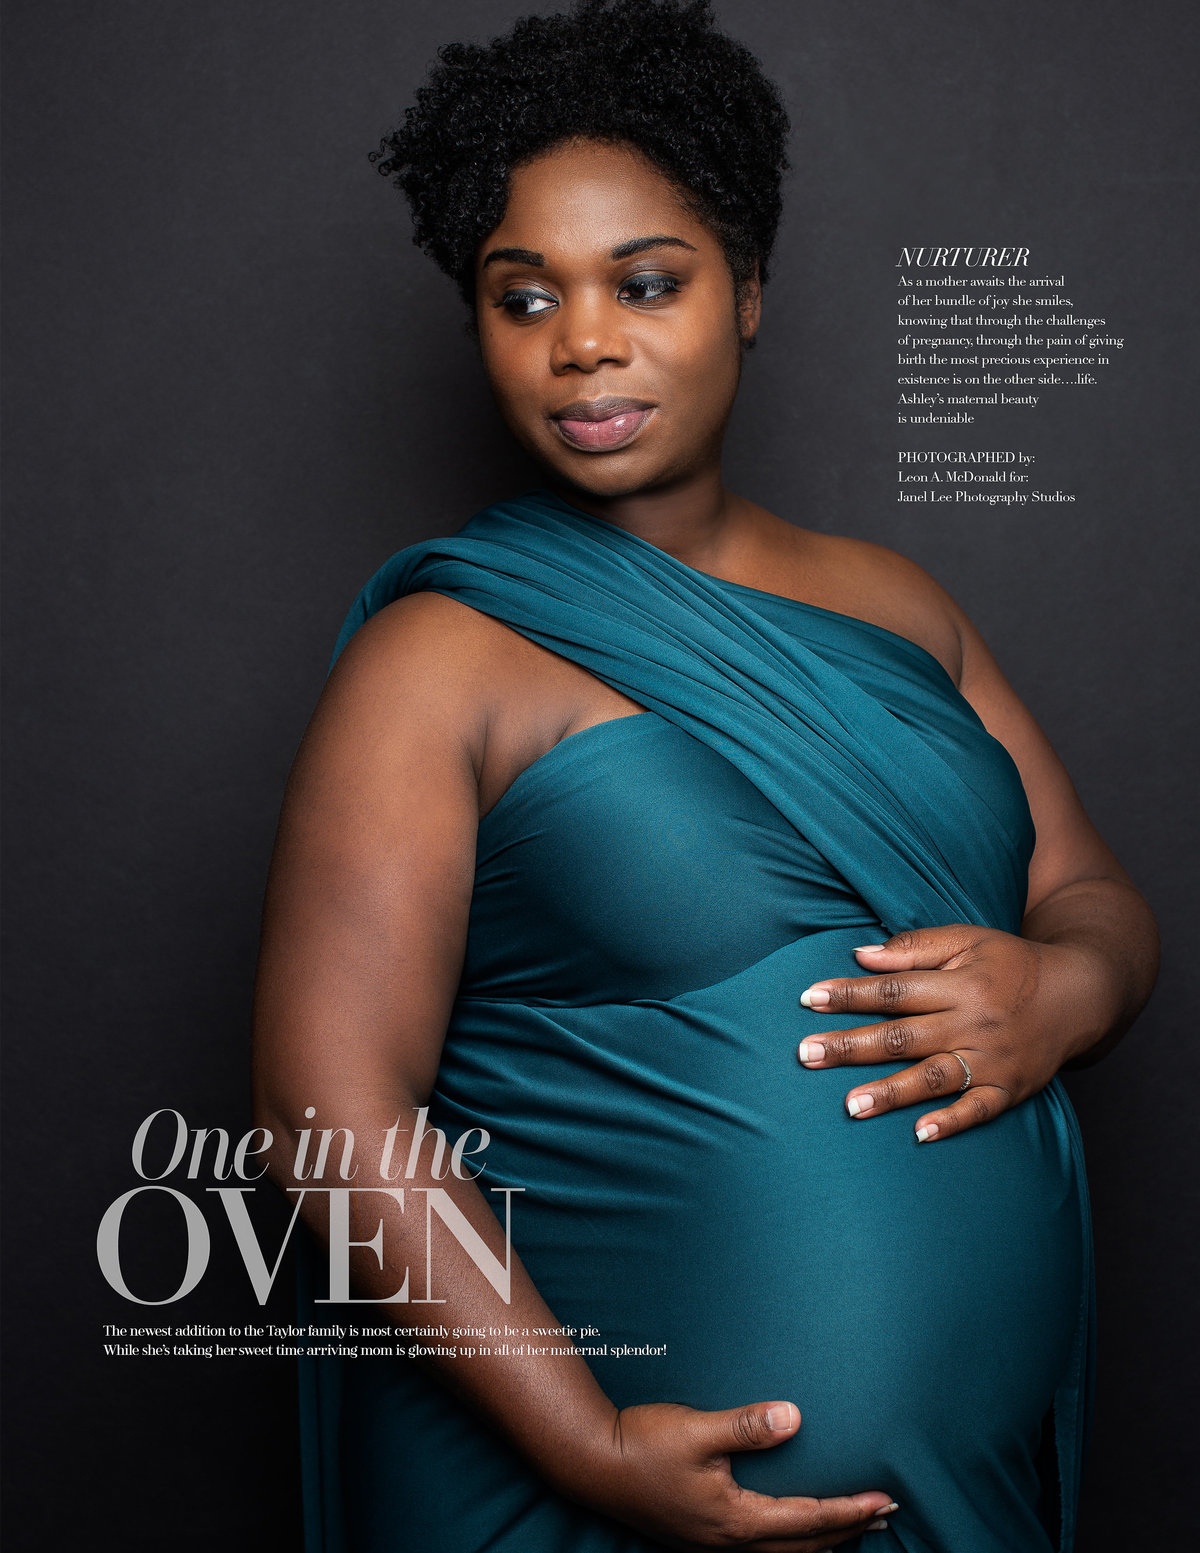 Janel-Lee-Photography-Cincinnati-Ohio-Magazine-maternity-pictures-1